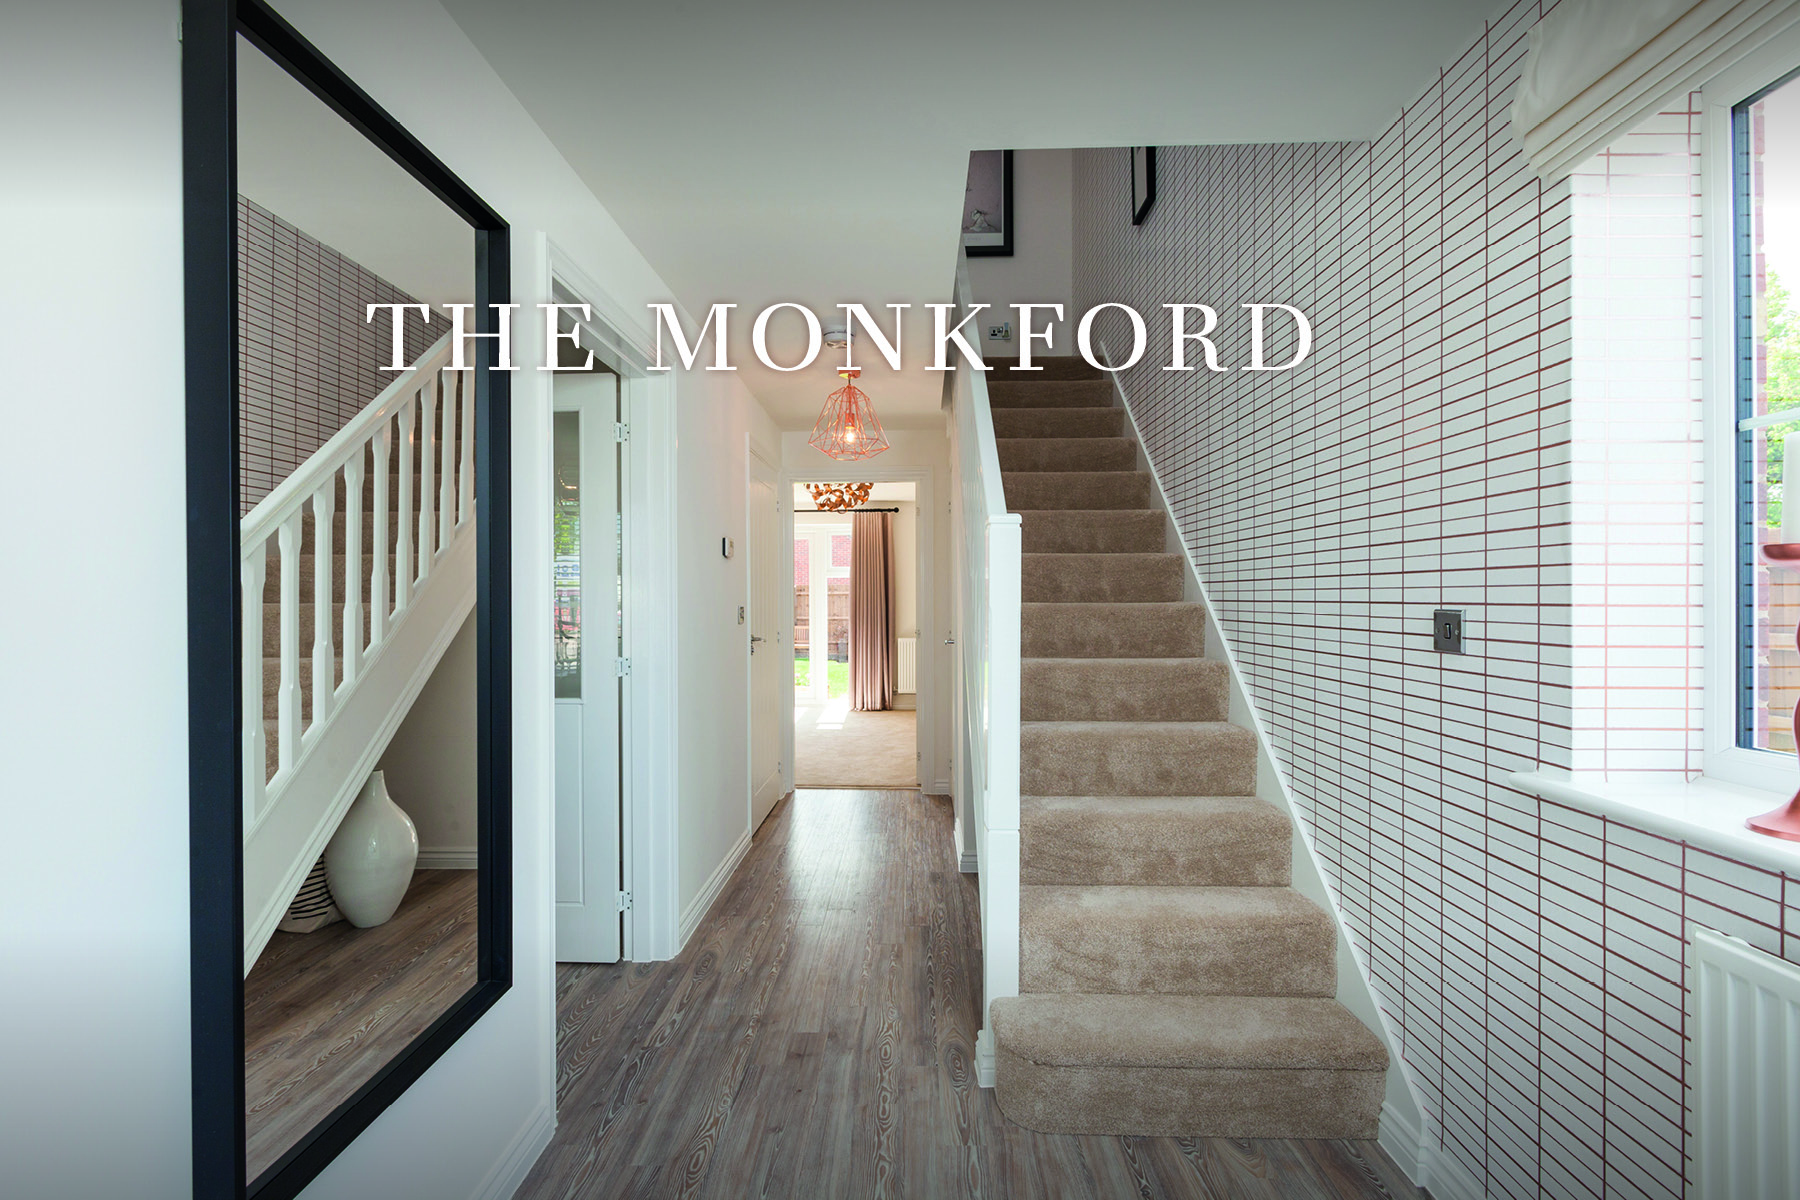 60945_TWWM - Inspirational Web Graphics - Fallows Heath - The Monkford - 1800x1200px